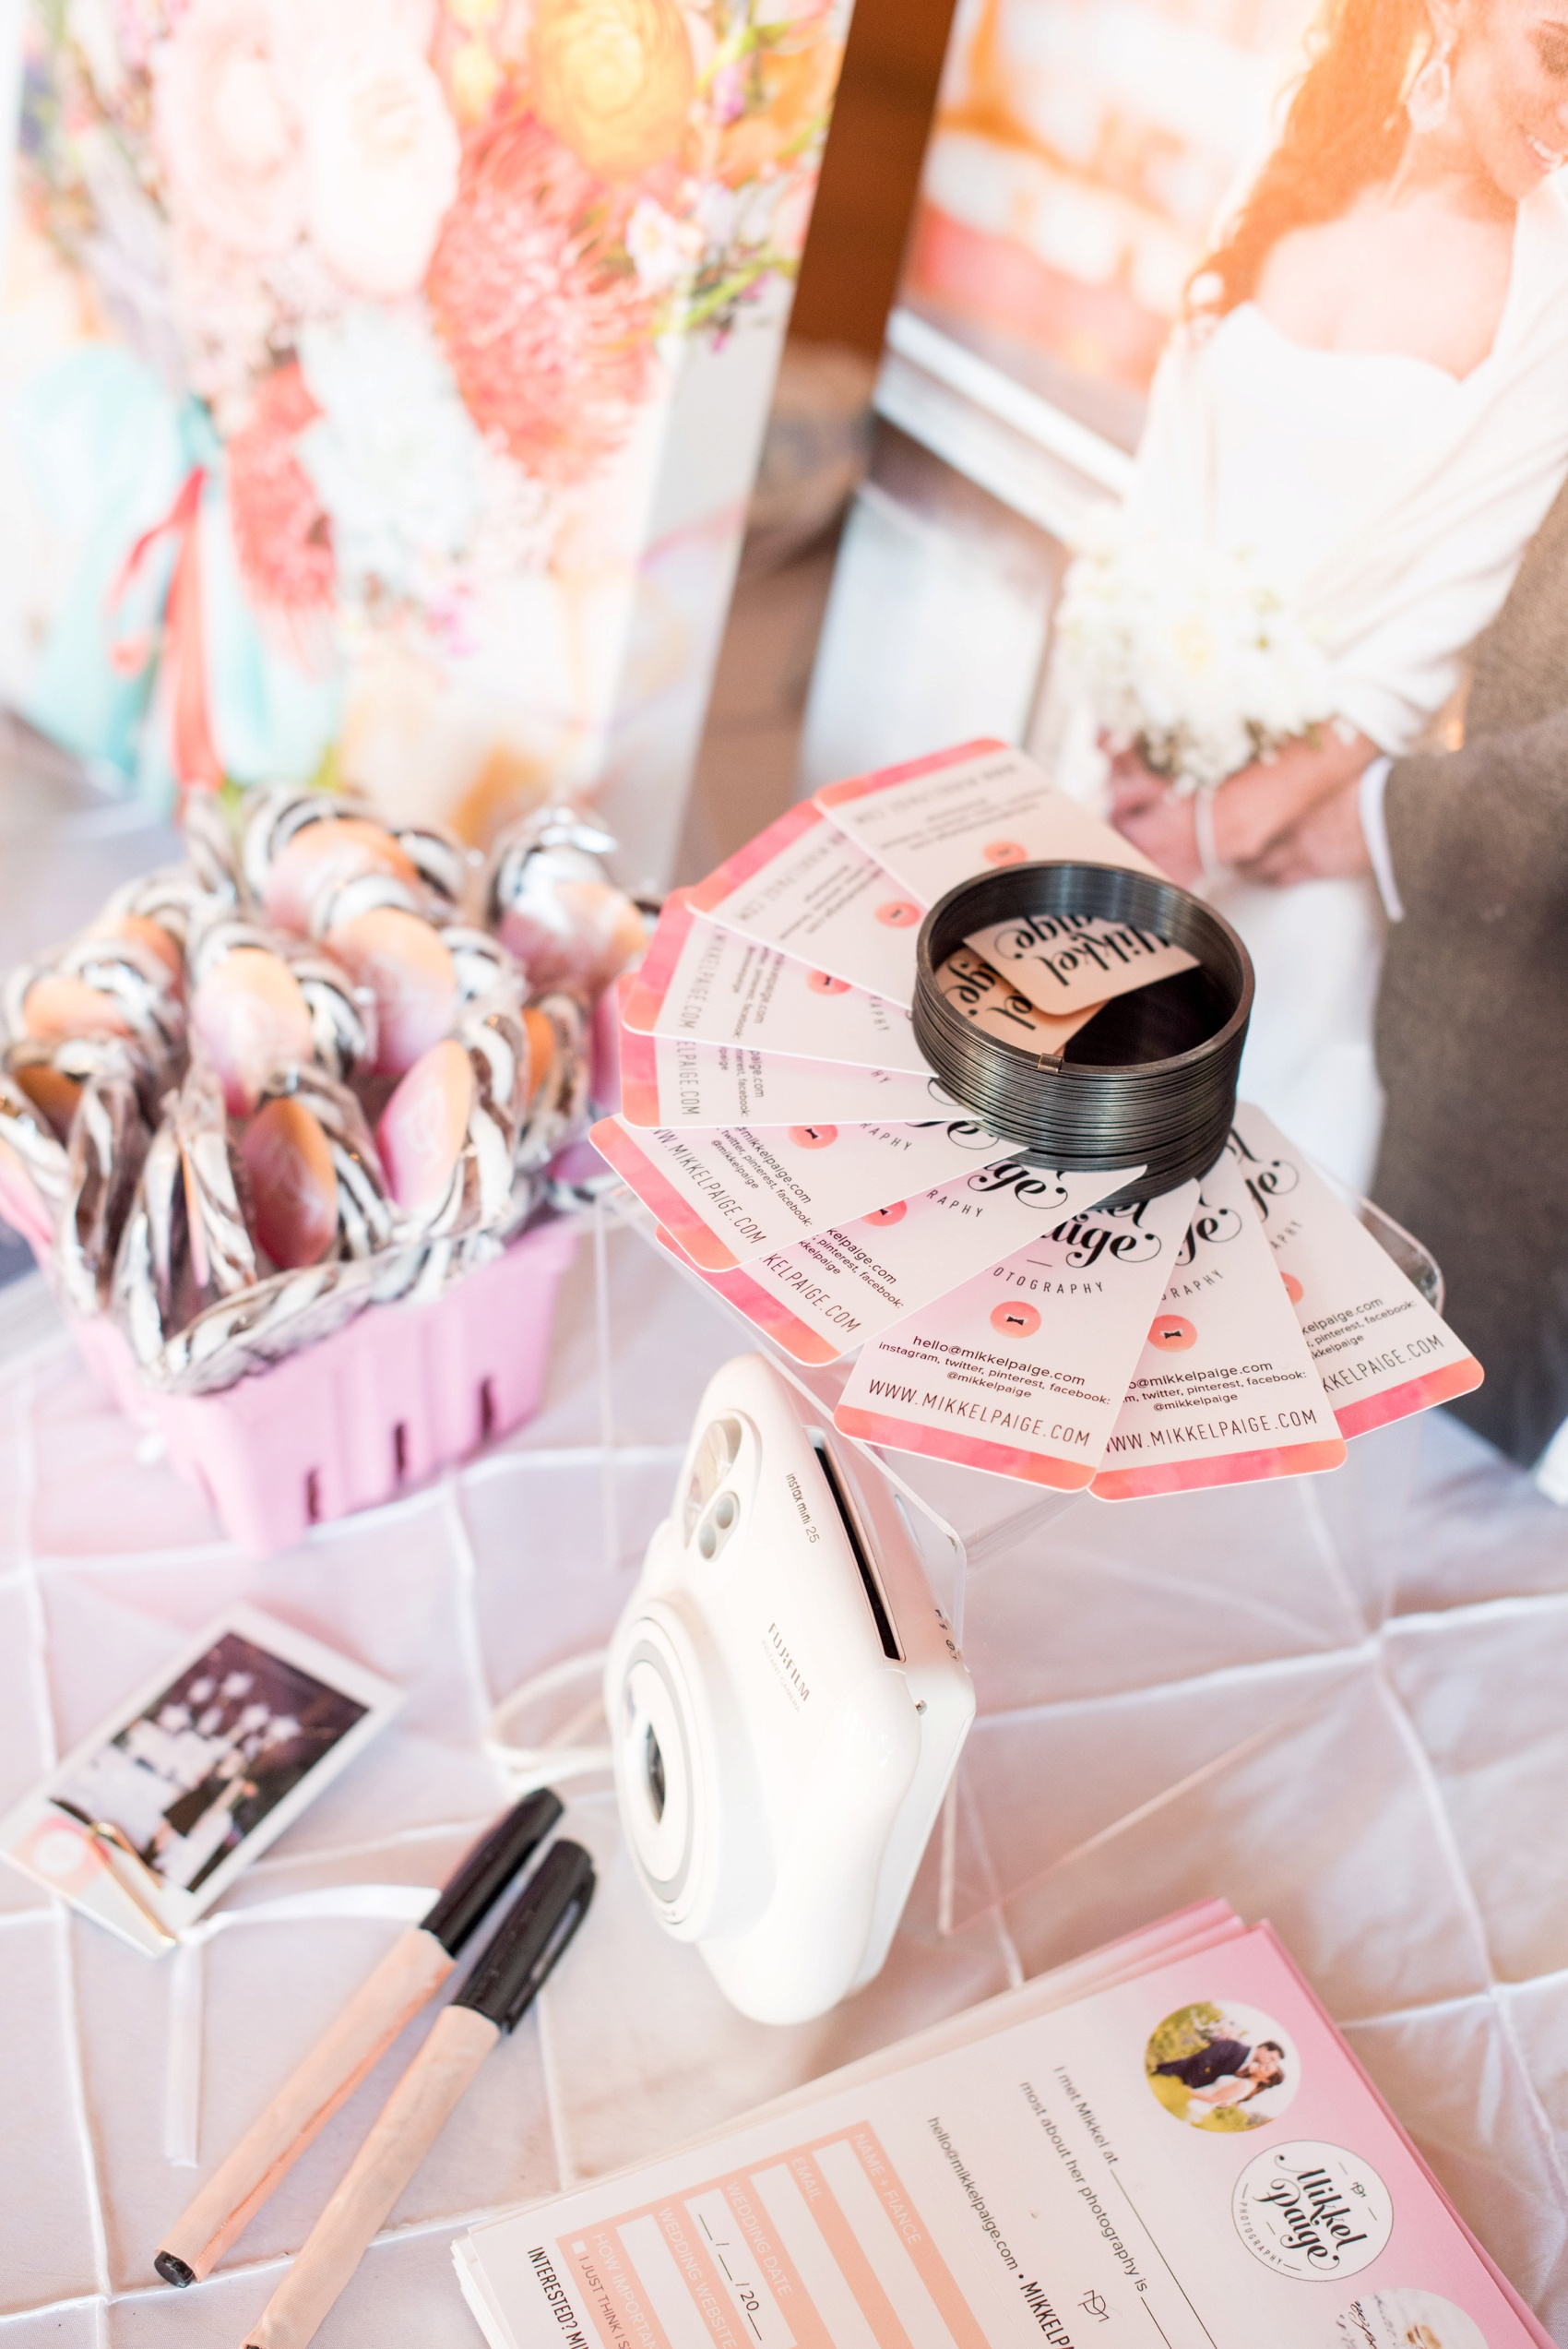 The Cloth Mill North Carolina wedding vendor showcase. Photographer Mikkel Paige Photography's table display with Instax and business card display.